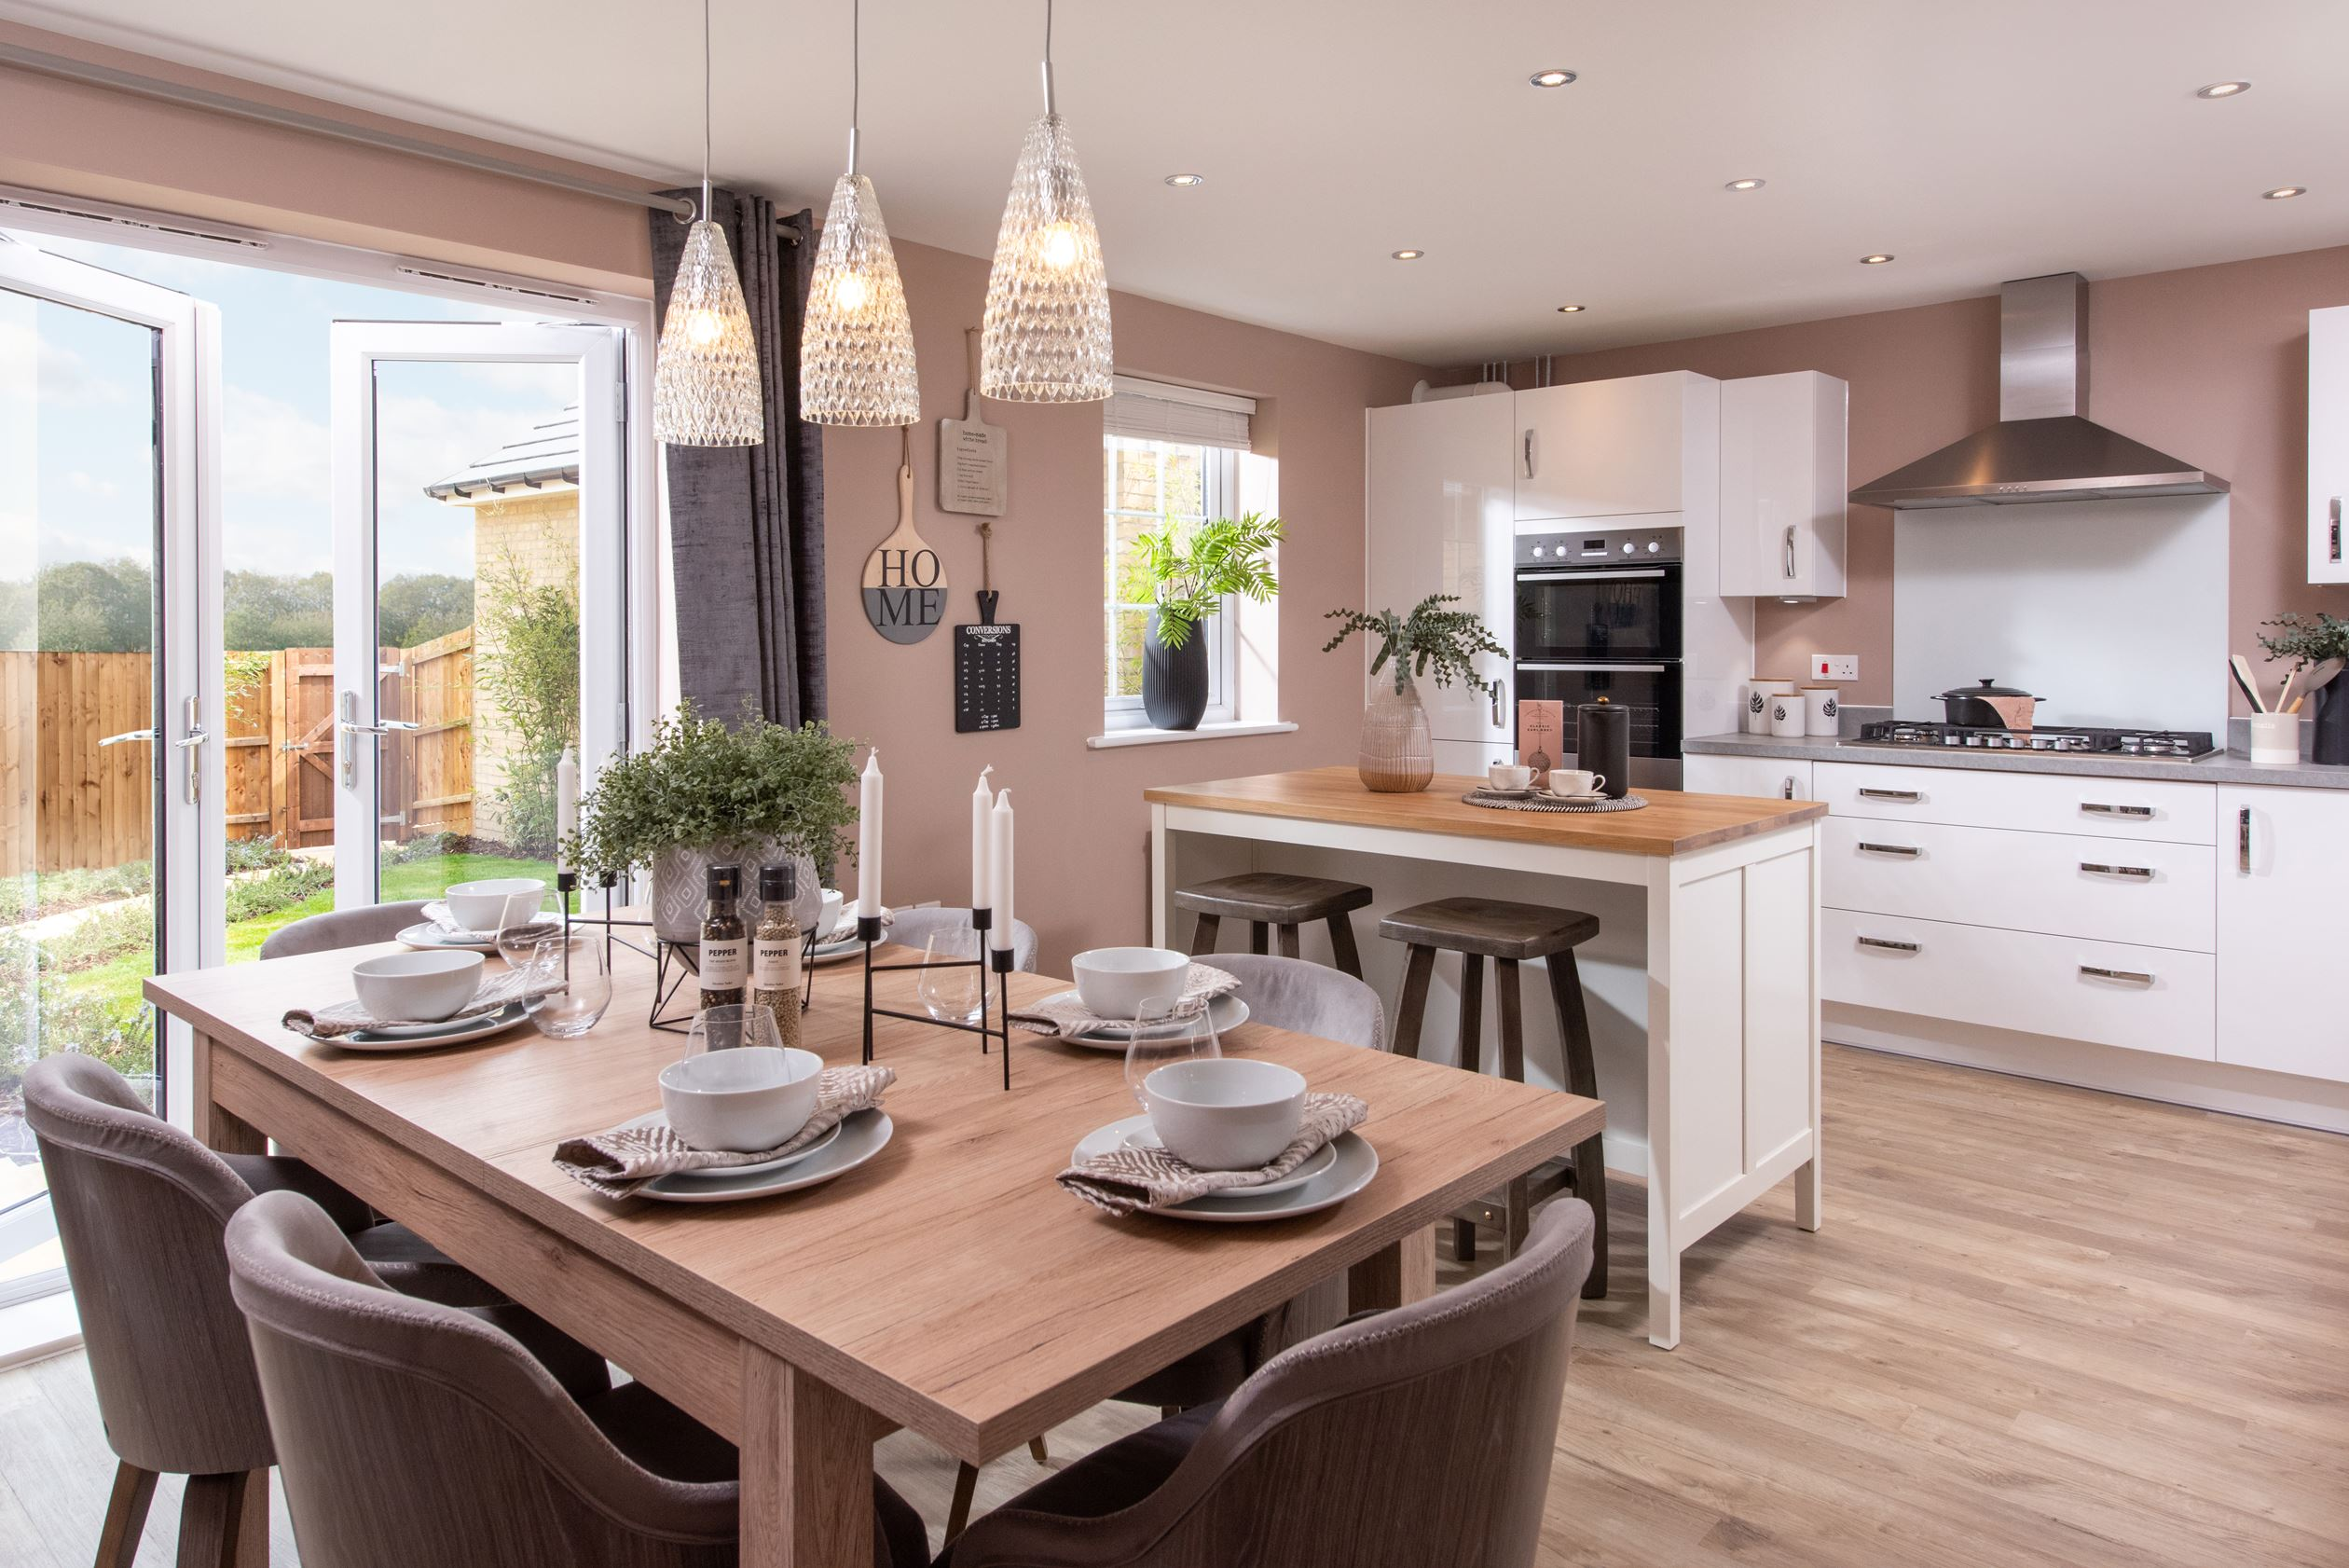 Marham Park Bayswater Kitchen with dining area